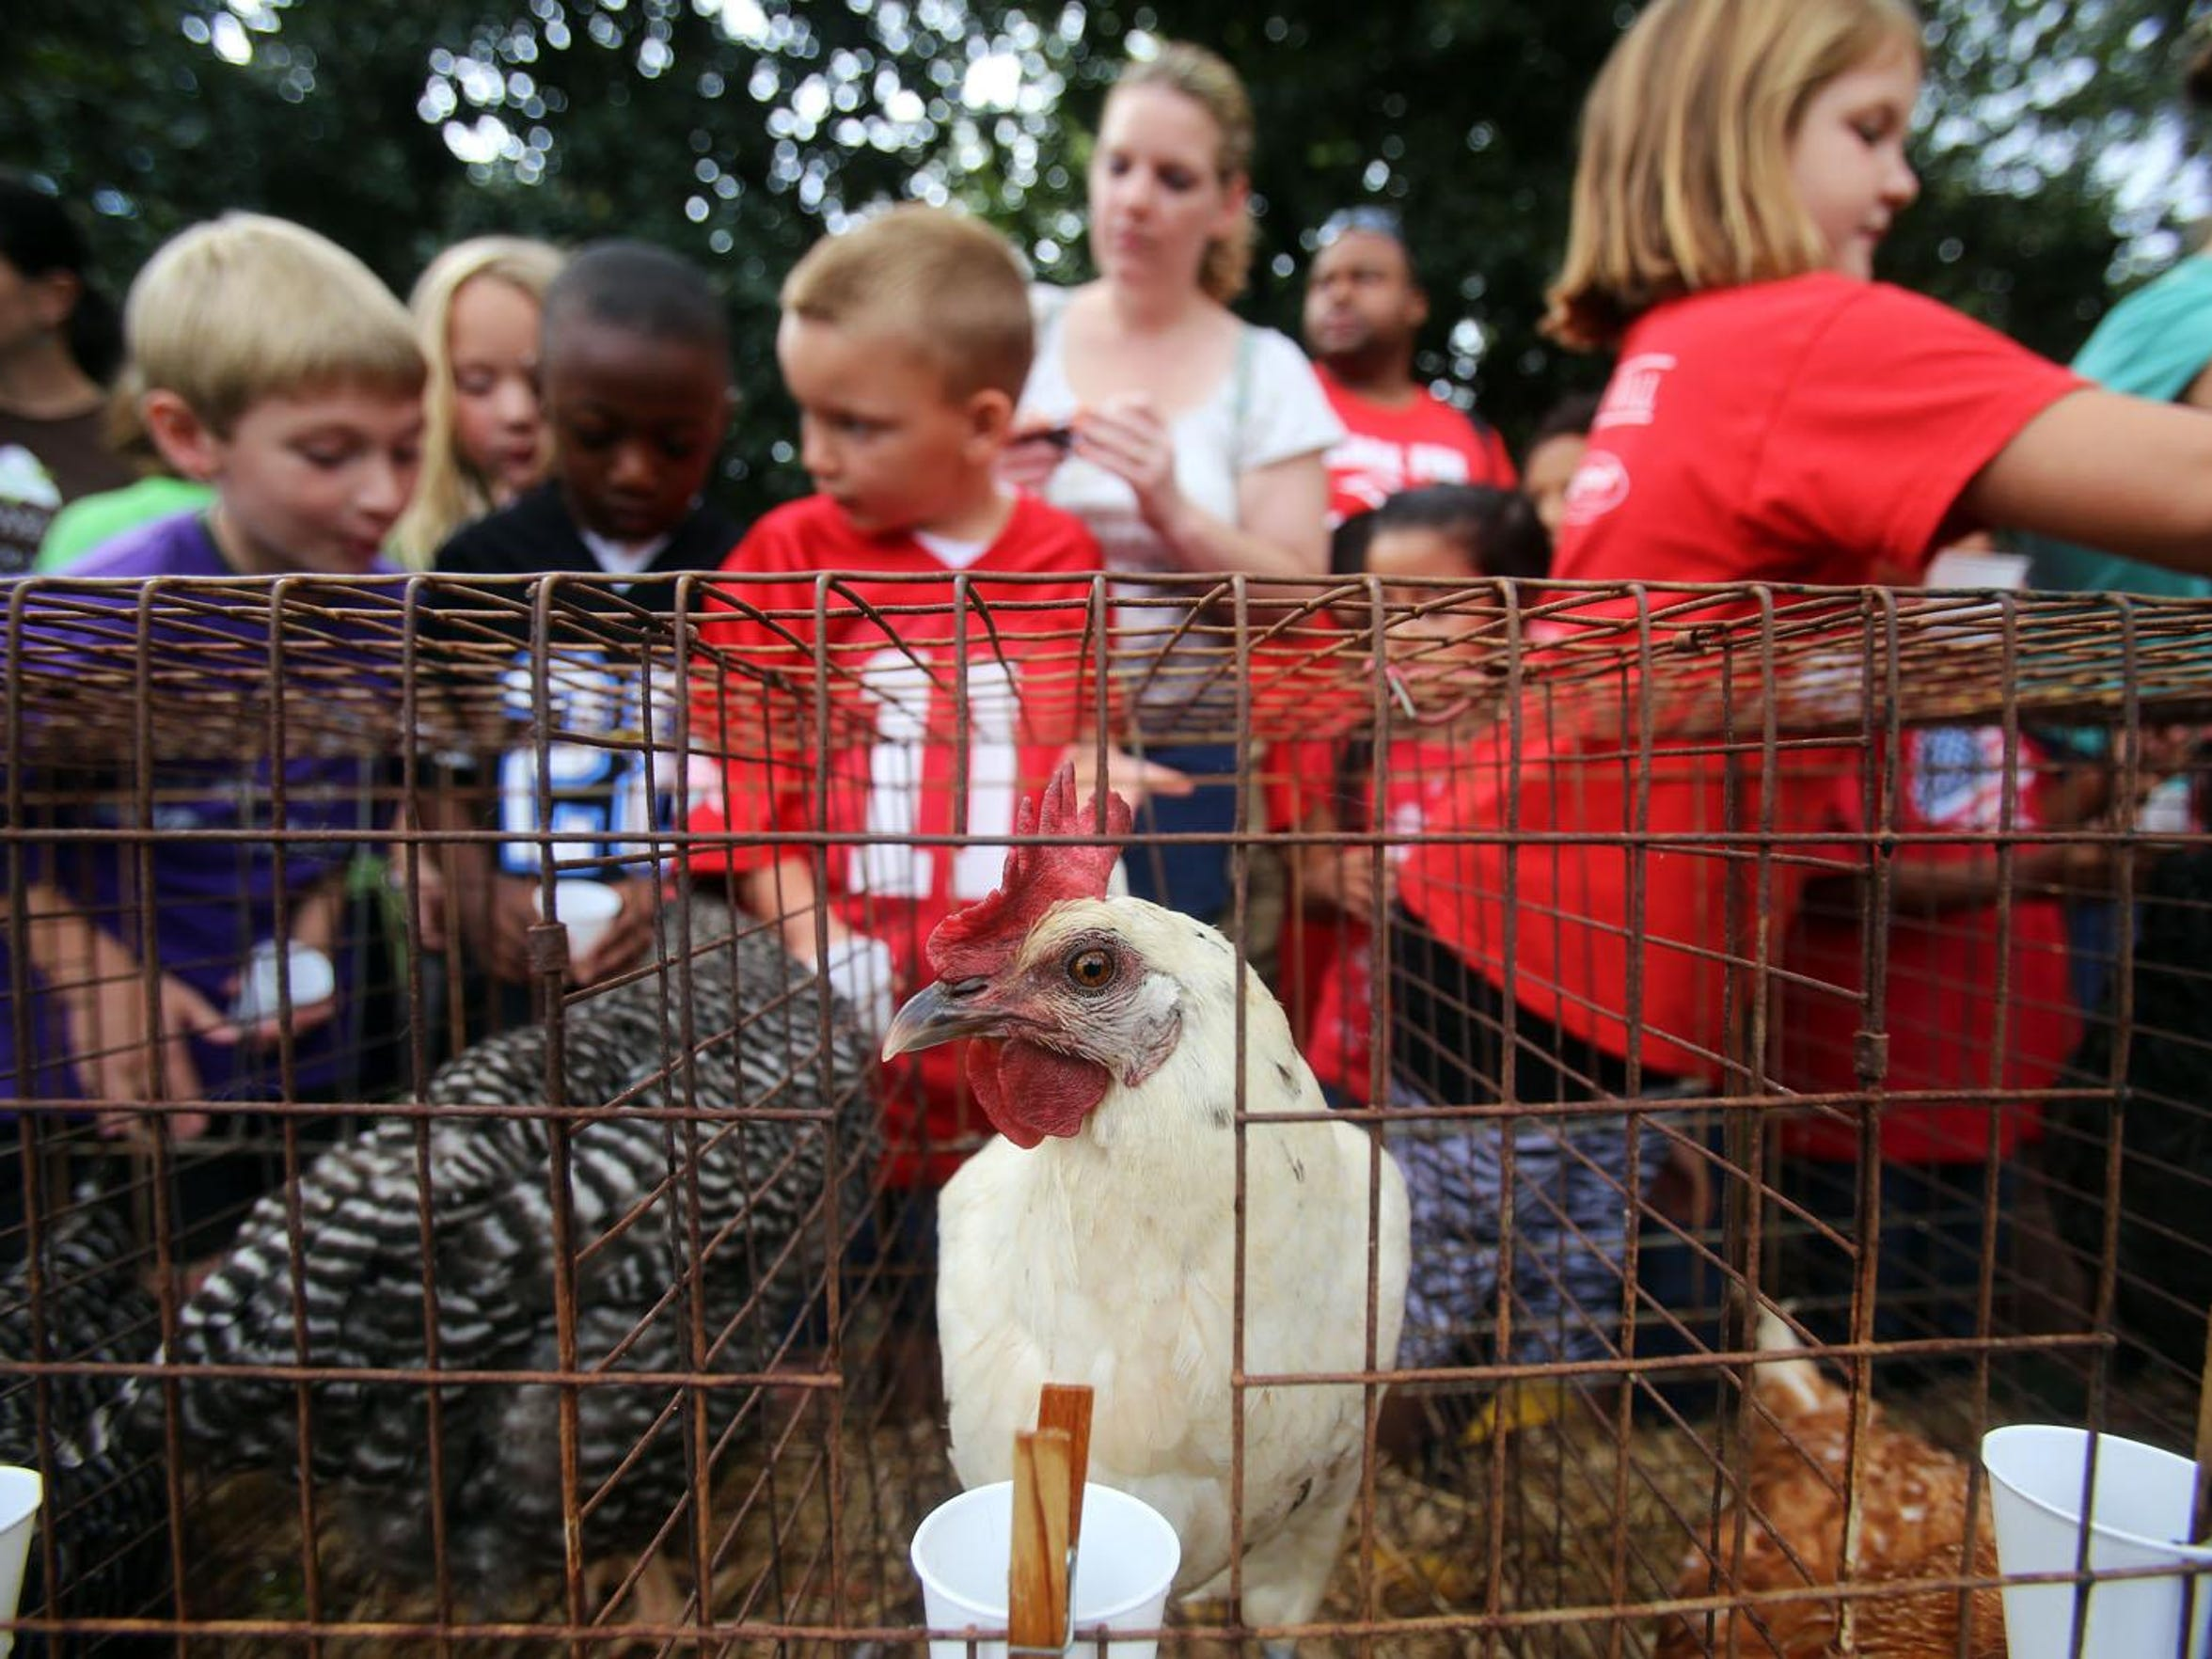 Childen pet and feed chickens belonging to Cherie and Karl Hammers of Rockvale during Heritage Days at the Sam Davis Home Thursday. John A. Gillis/DNJ Kids pet and feed chickens belonging Cherie and Karl Hammers of Rockvale during Heritage Days at the Sam Davis Home Thursday, Sept. 26, 2013.